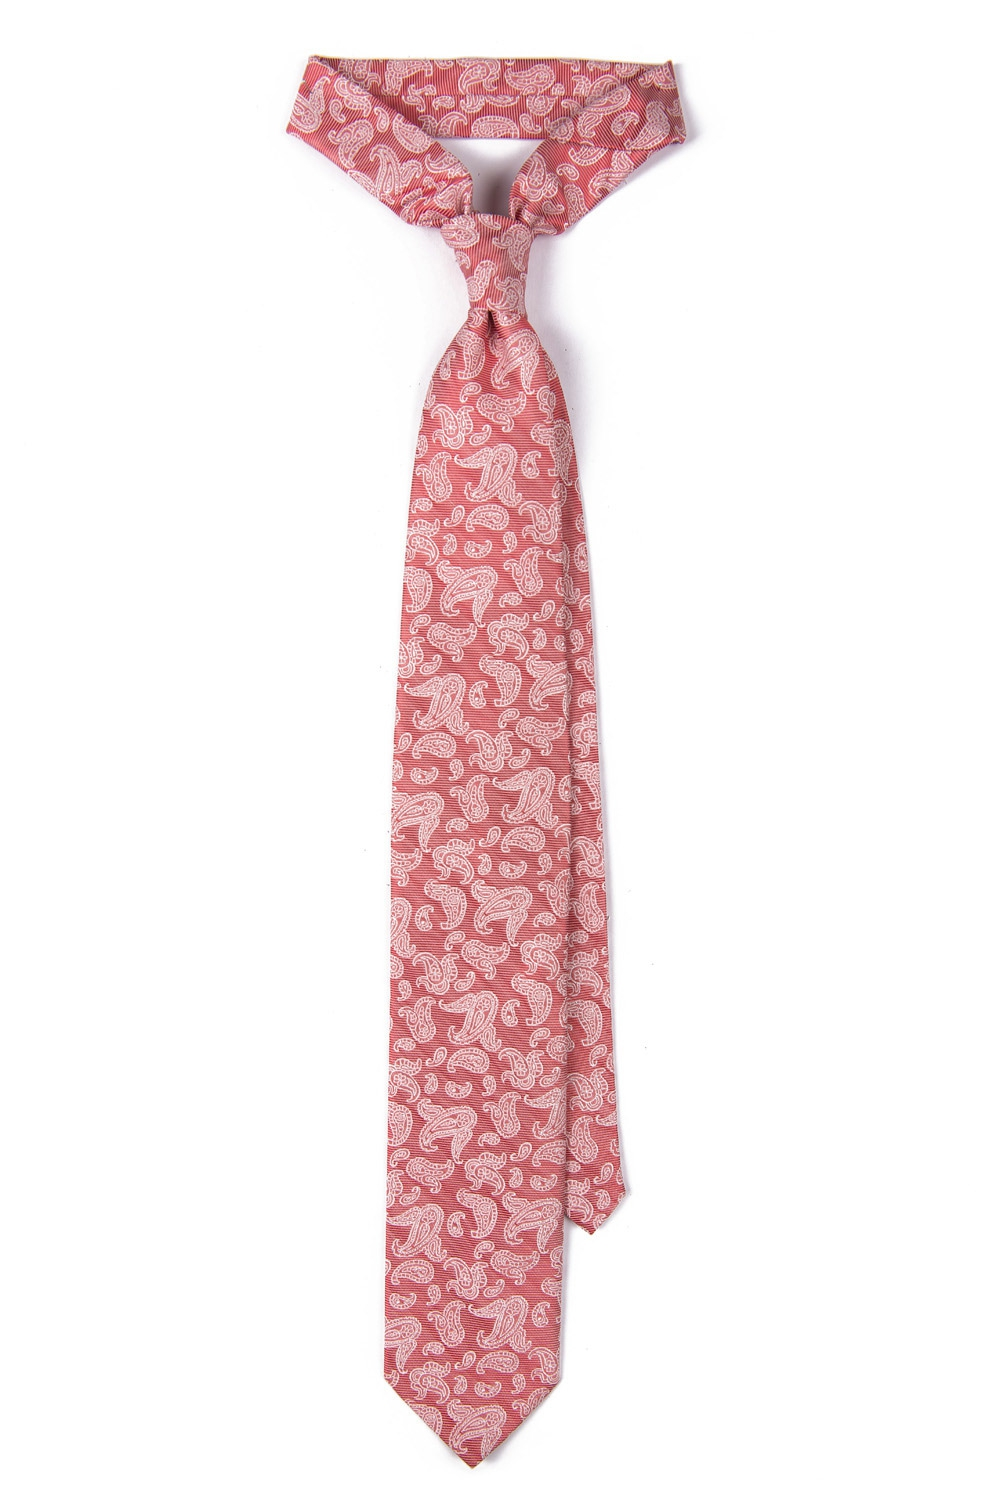 Red Floral Tie 0